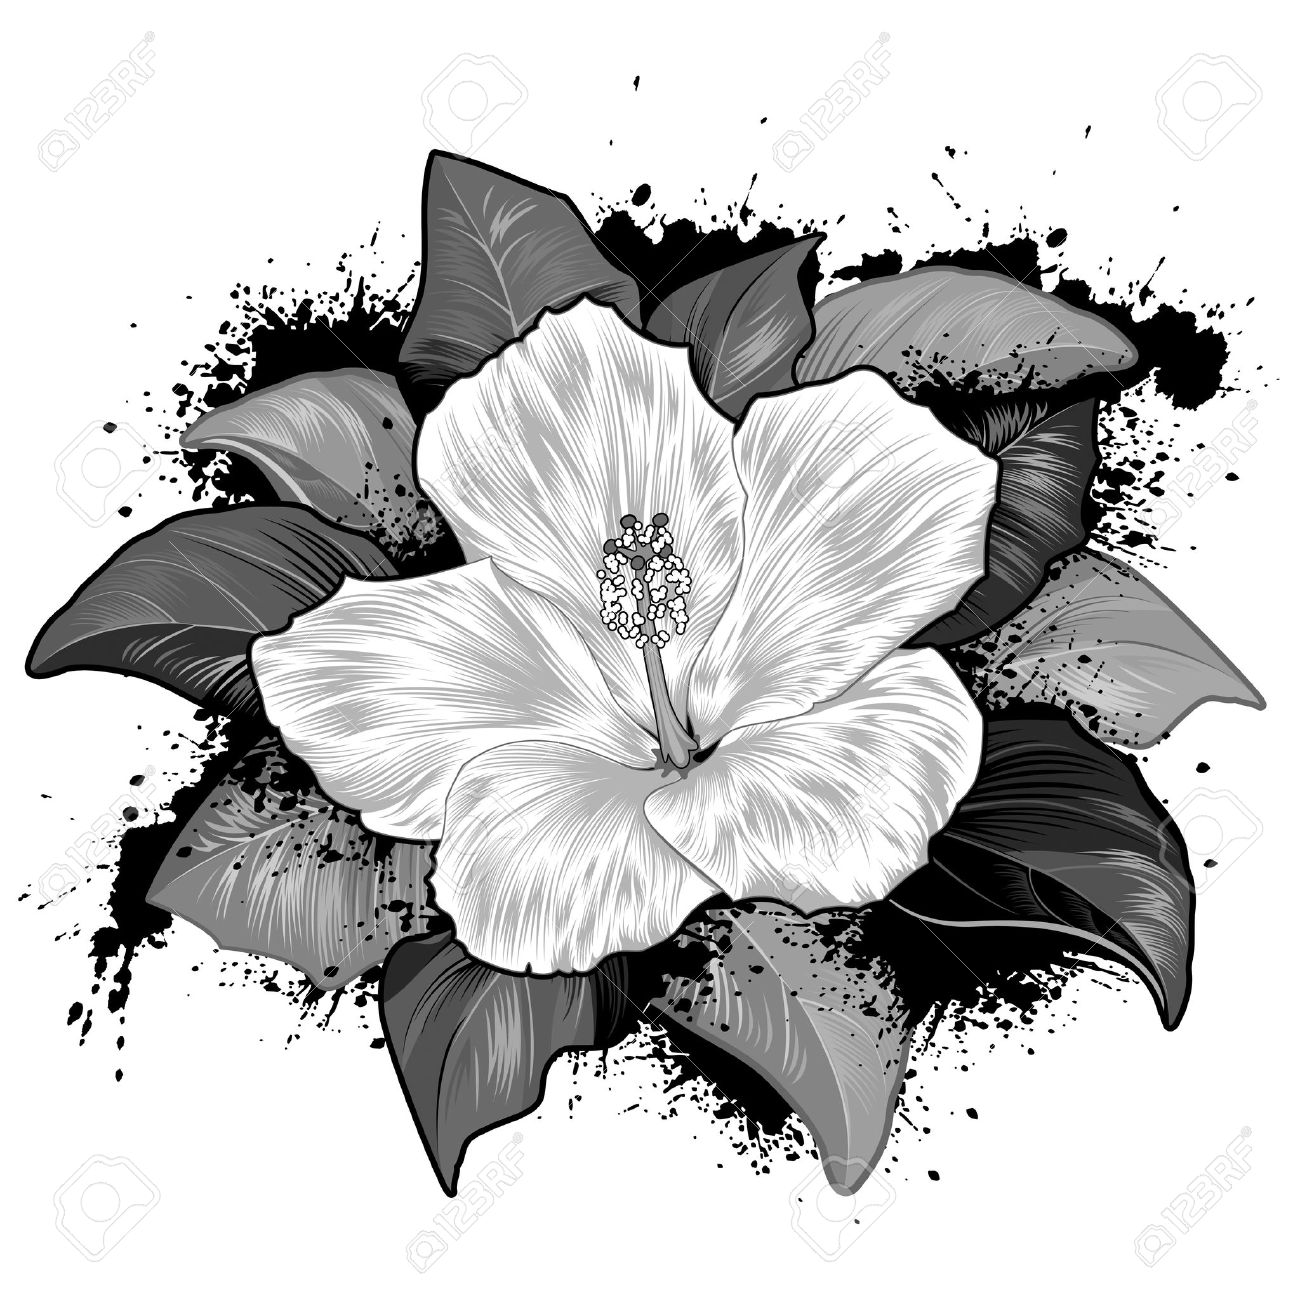 Hibiscus flower drawing on white background royalty free cliparts hibiscus flower drawing on white background stock vector 12963948 izmirmasajfo